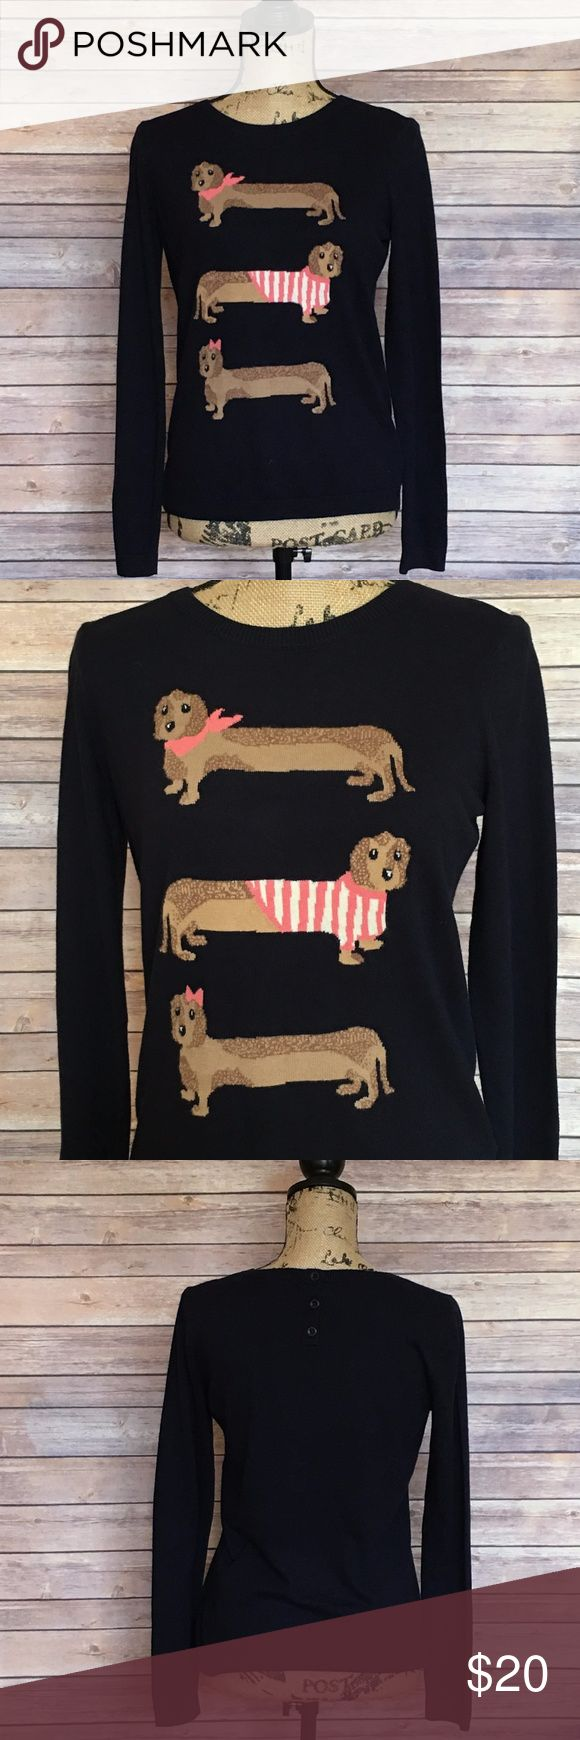 Talbots Dachshund Sweater Size Medium Petite Talbots Navy Blue Sweater Dachshunds on the front Super Cute (Size Tag is cut out) No signs of wear or fading. Talbots Sweaters Crew & Scoop Necks